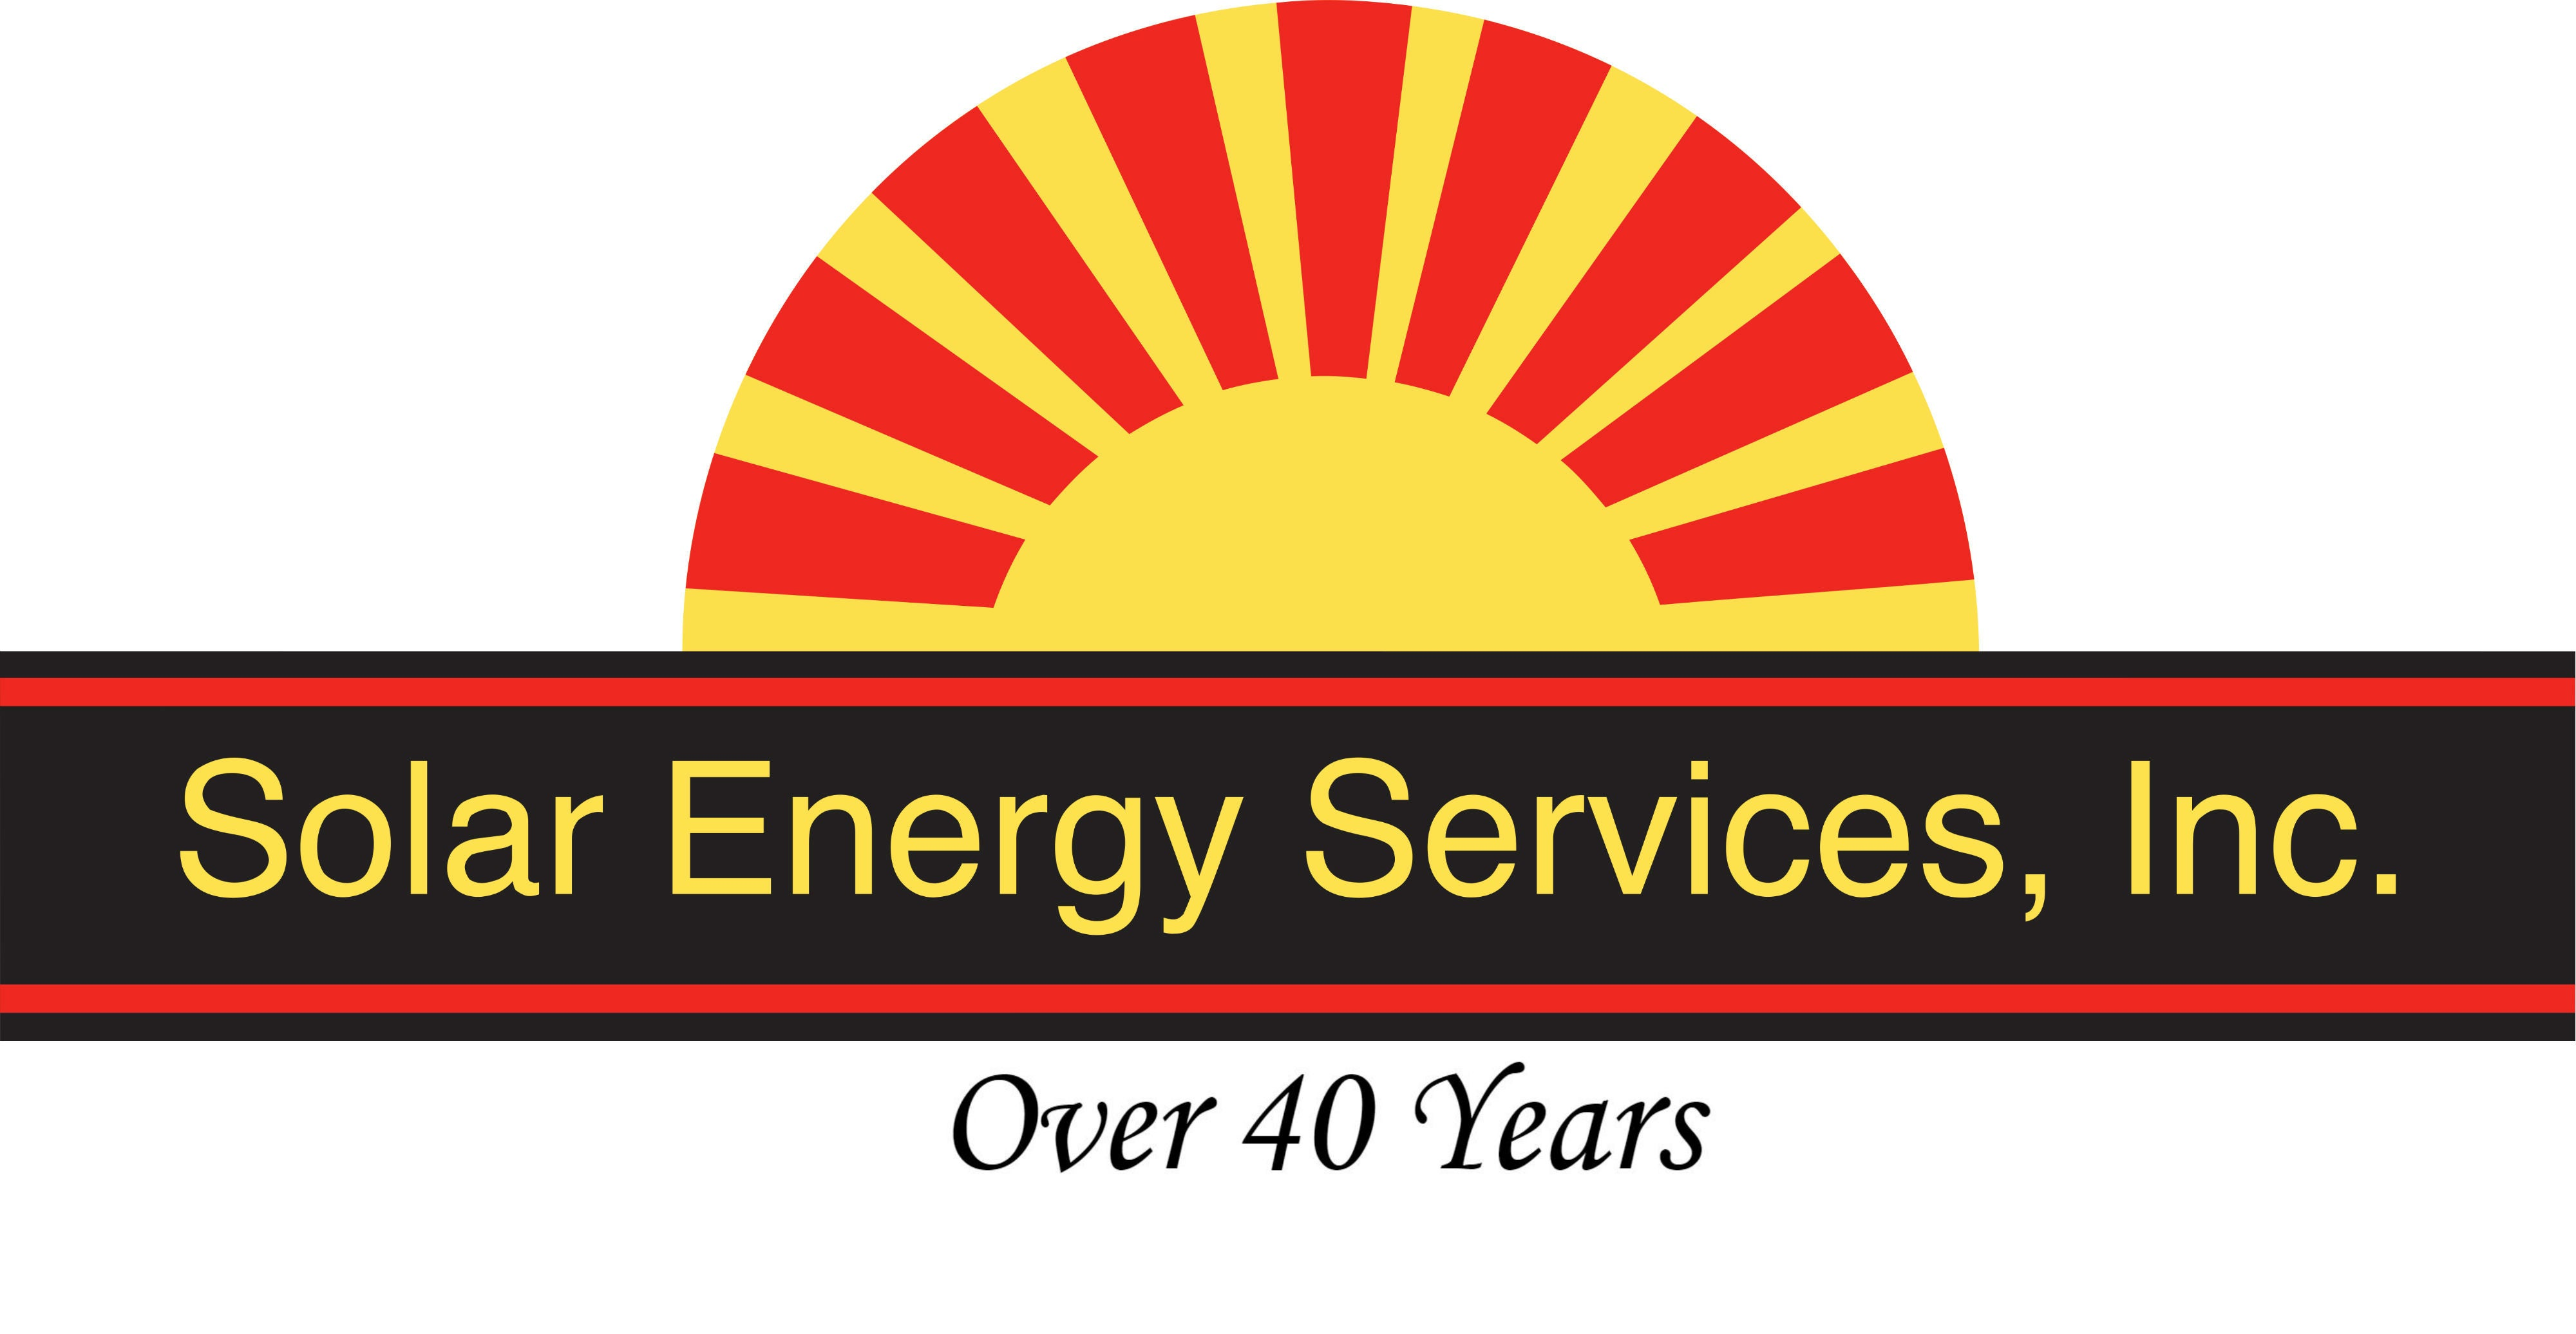 Who are the best solar panel companies near me in Maryland